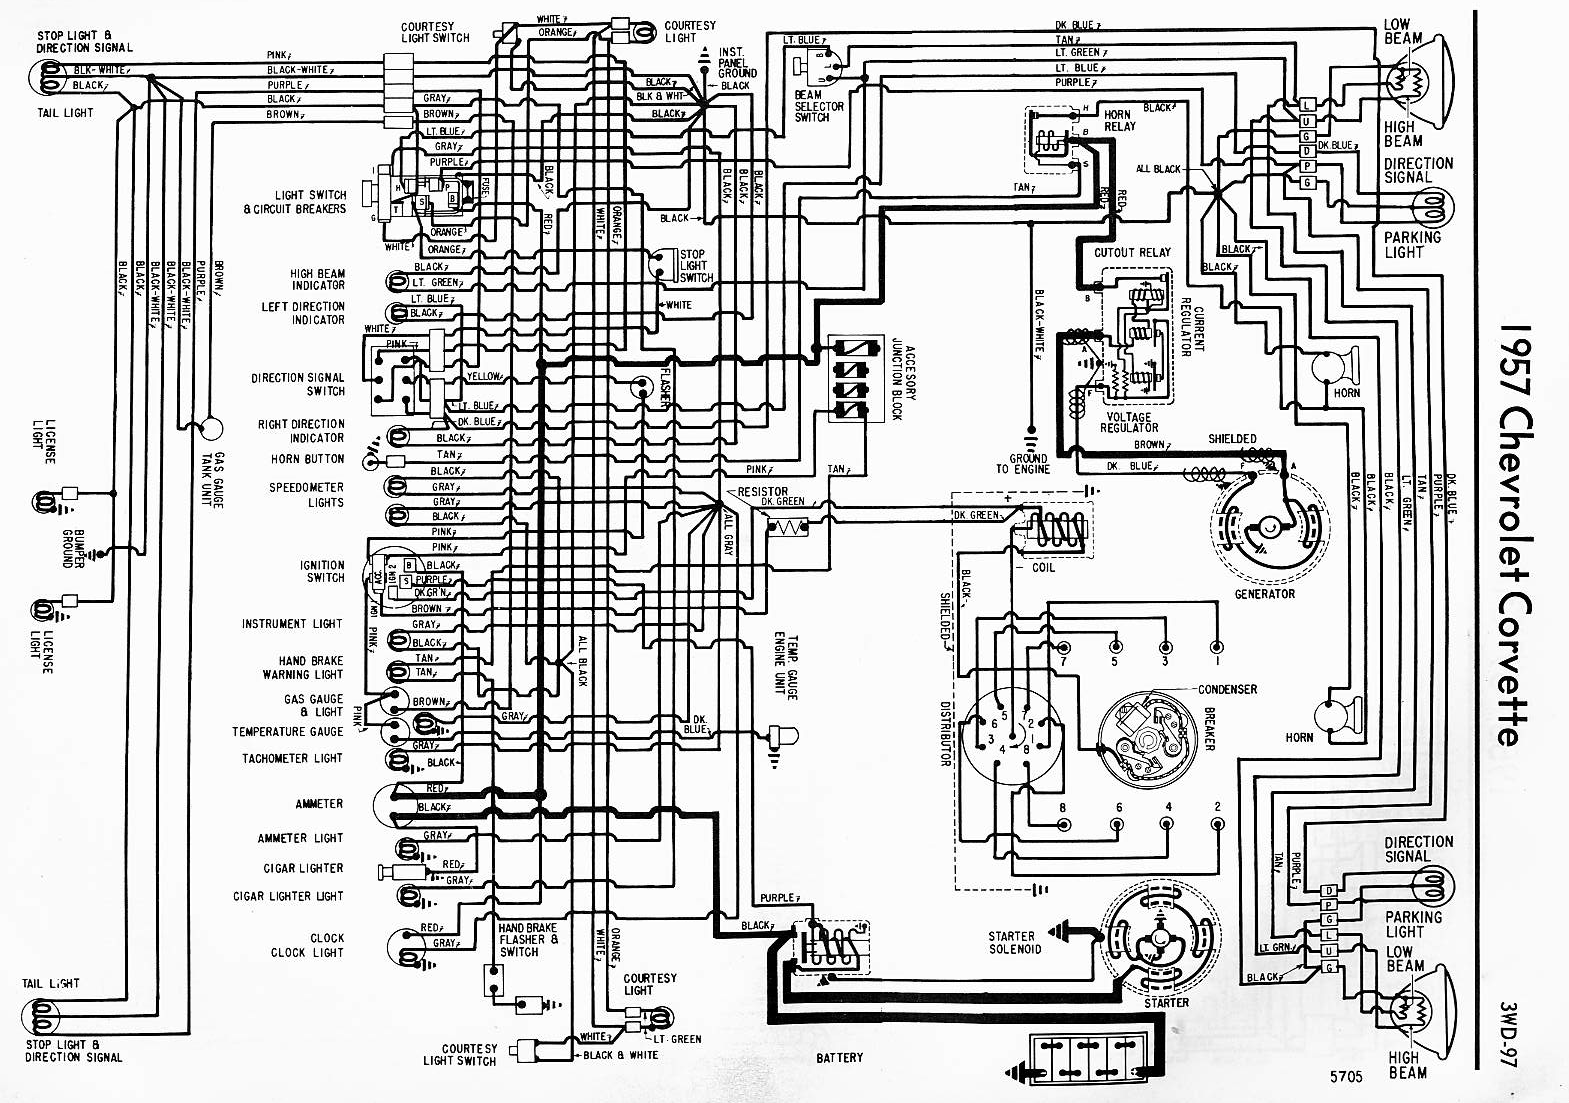 57 corvettte tracer schematic best one 1957 corvette wiring diagram willcox corvette, inc 1978 corvette wiring diagram at suagrazia.org